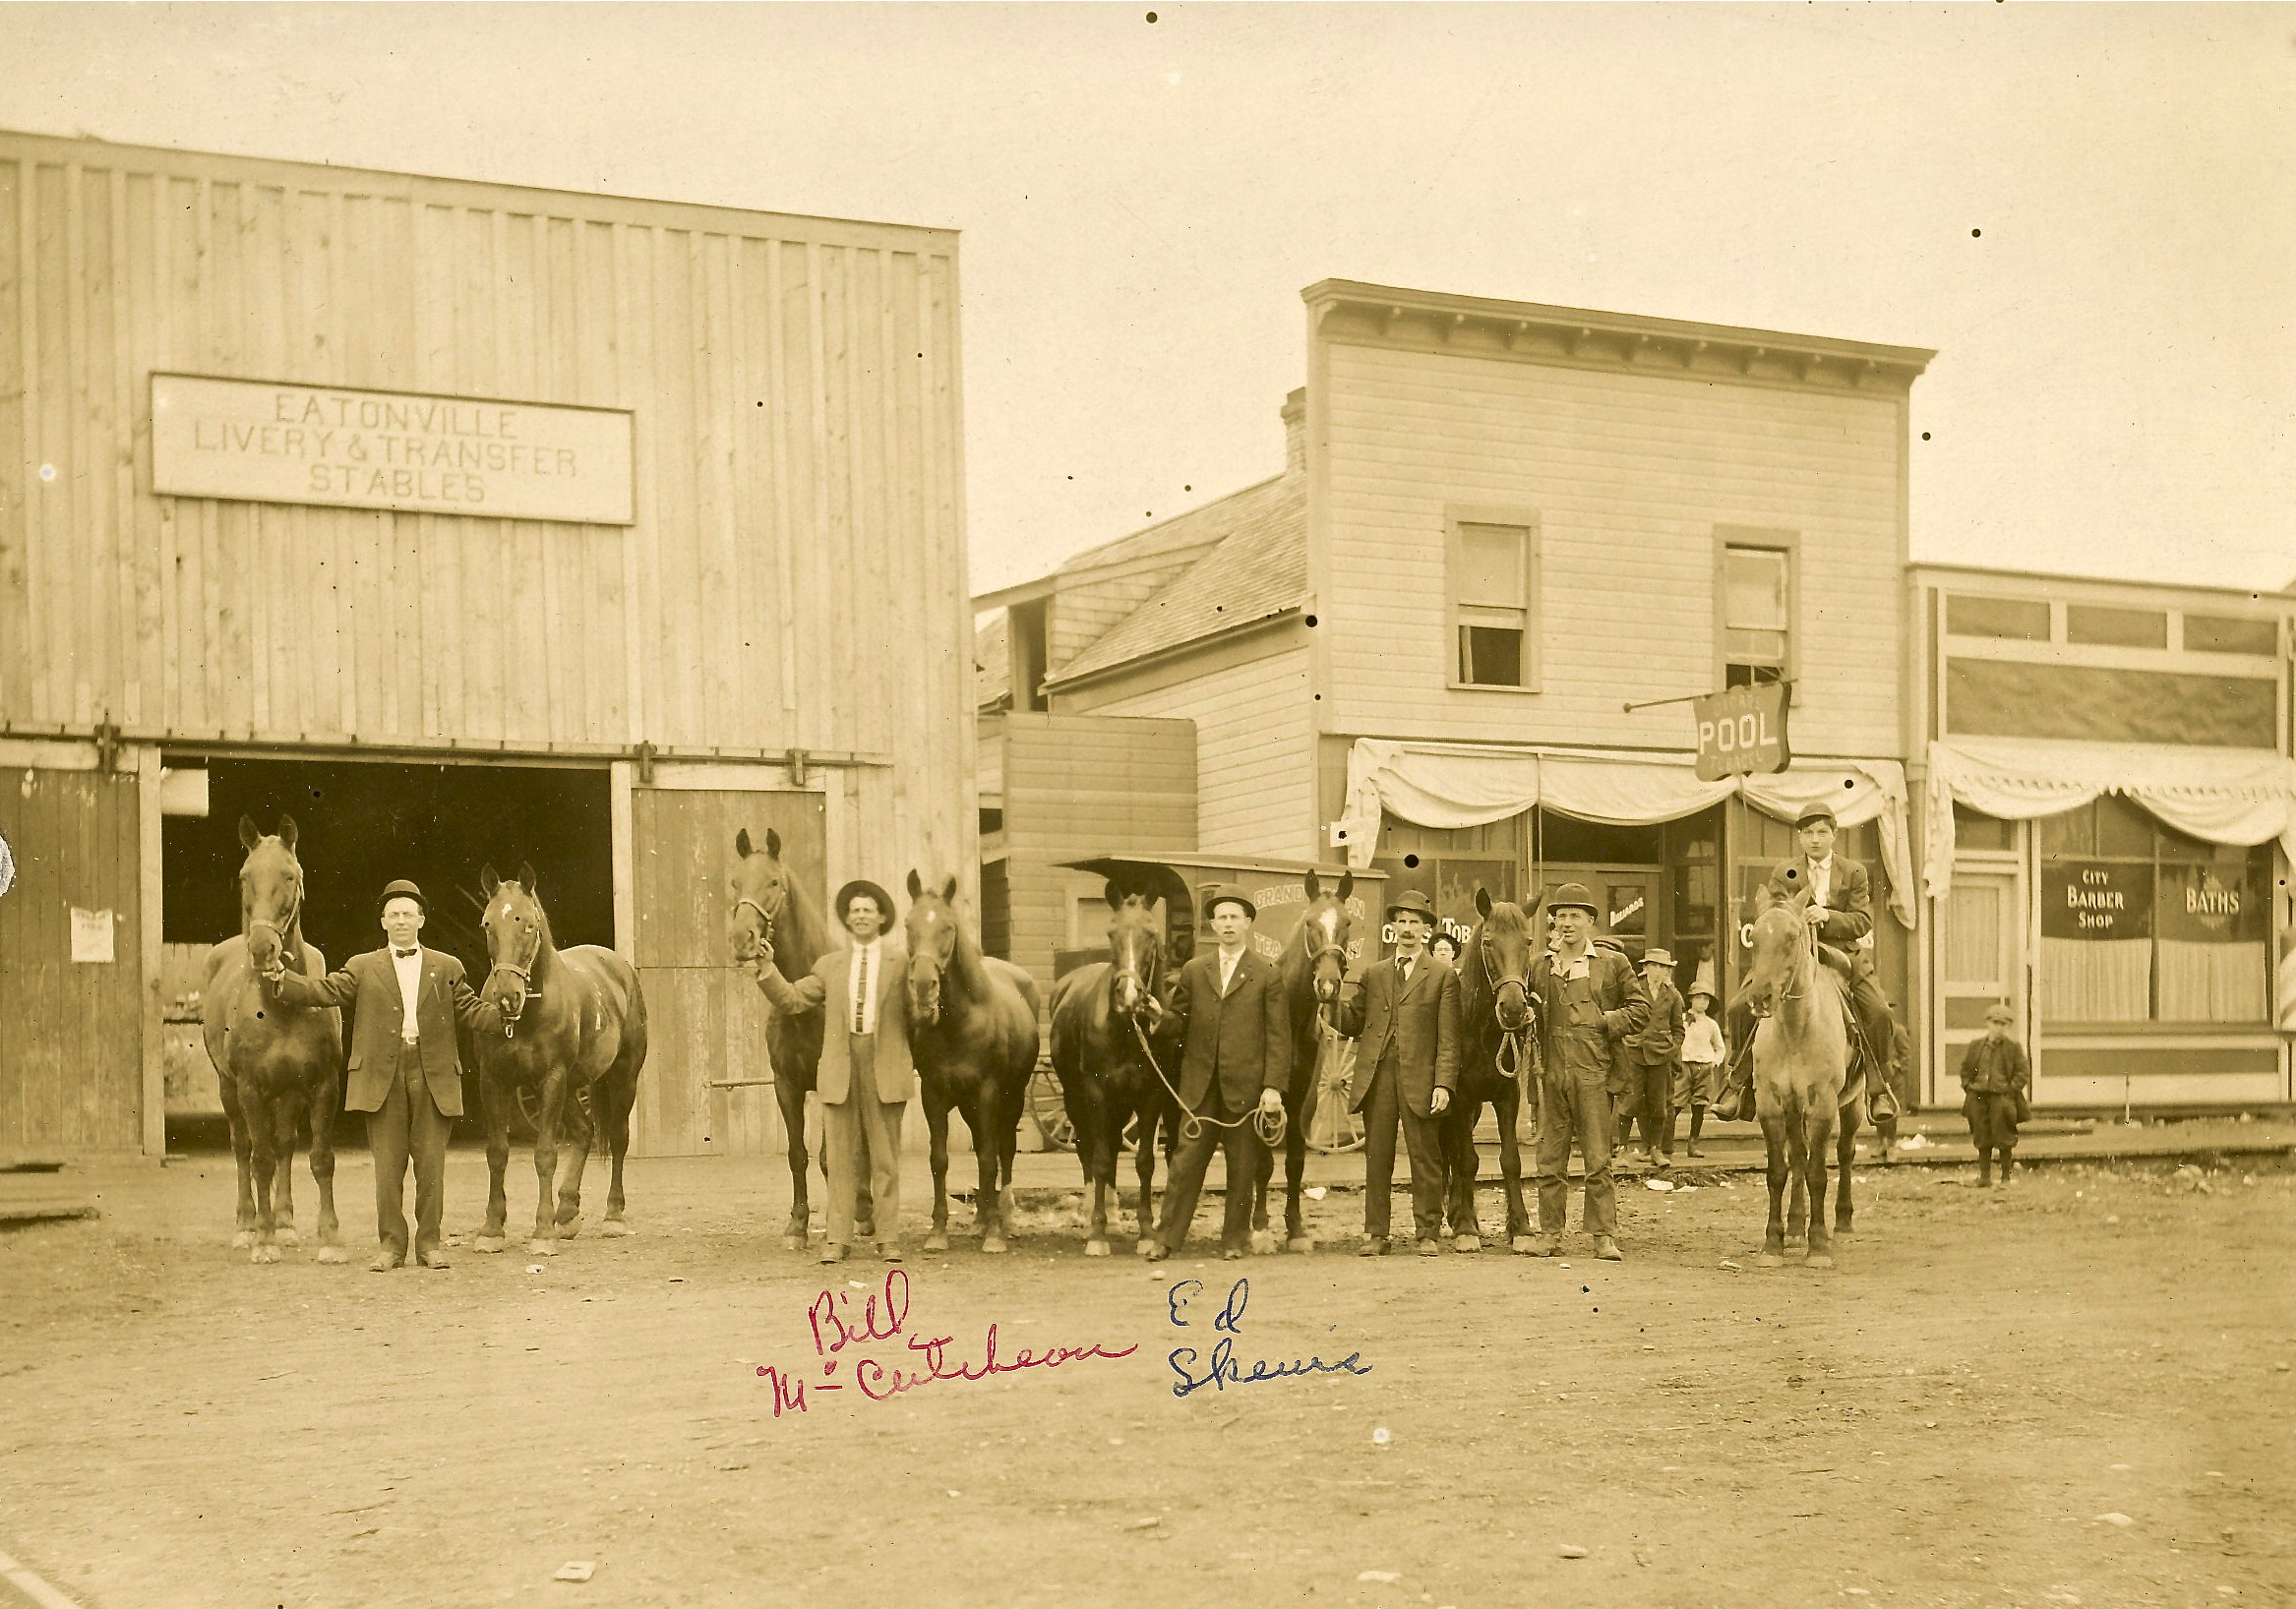 eatonville livery stable amp pool hall ca 1900